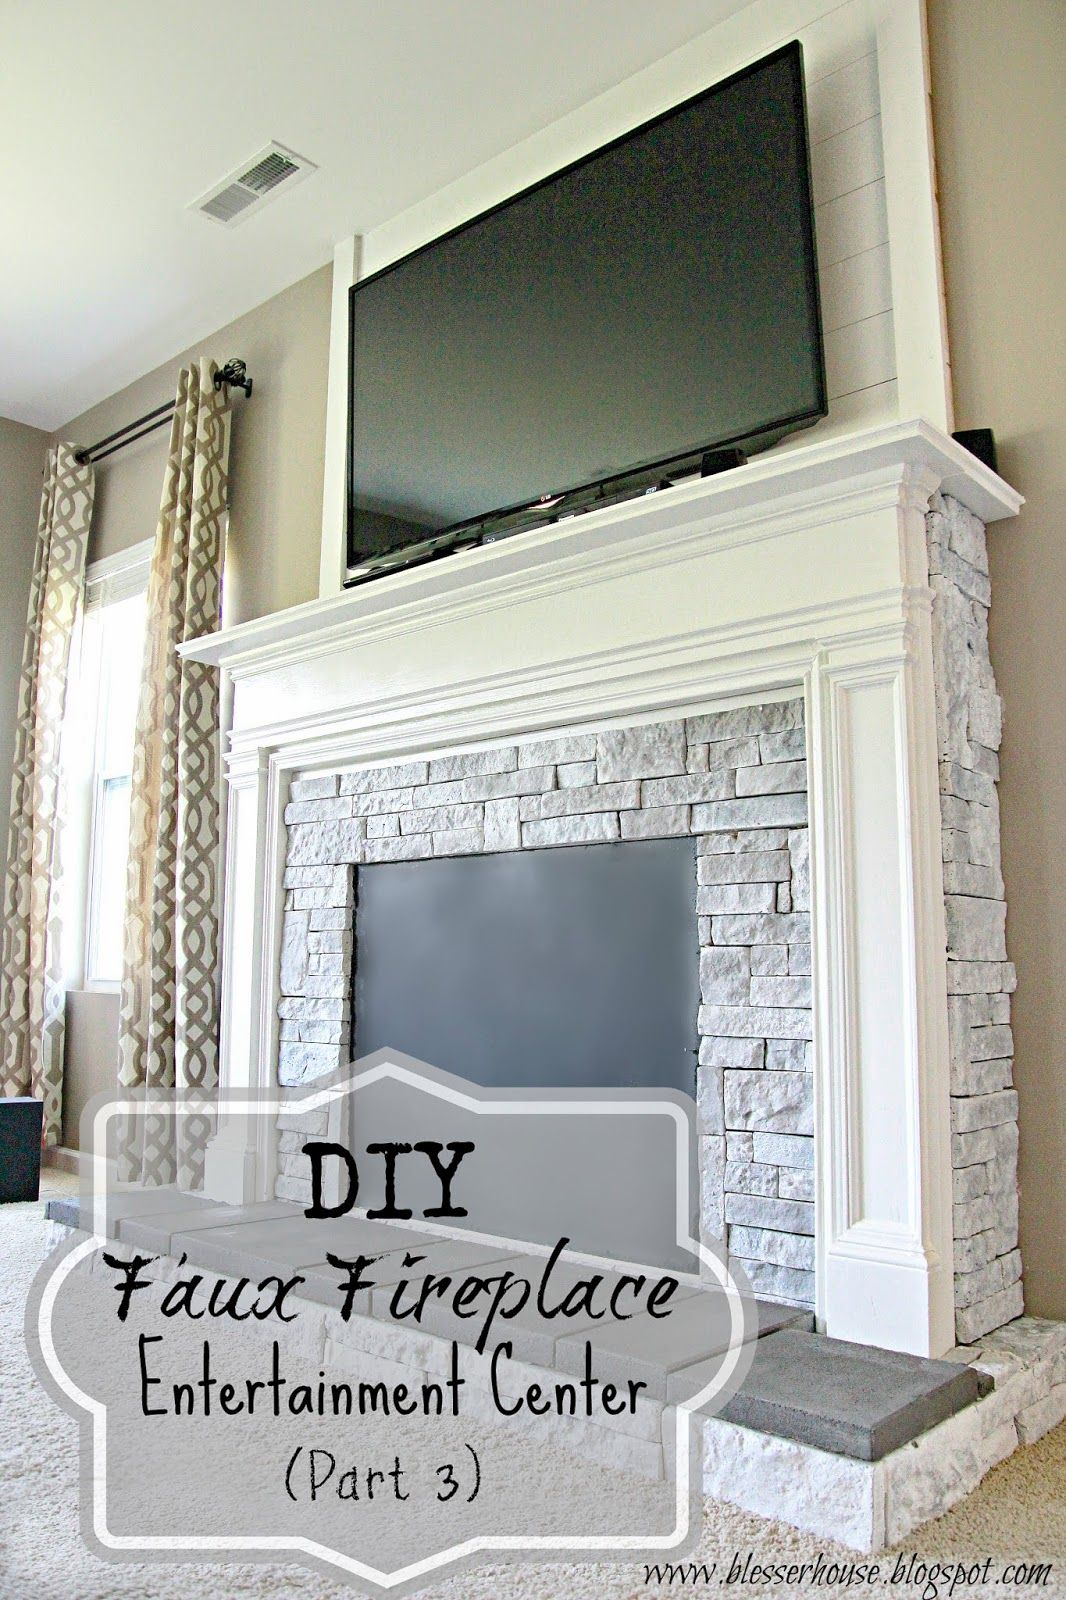 diy faux fireplace entertainment center part 3 faux. Black Bedroom Furniture Sets. Home Design Ideas